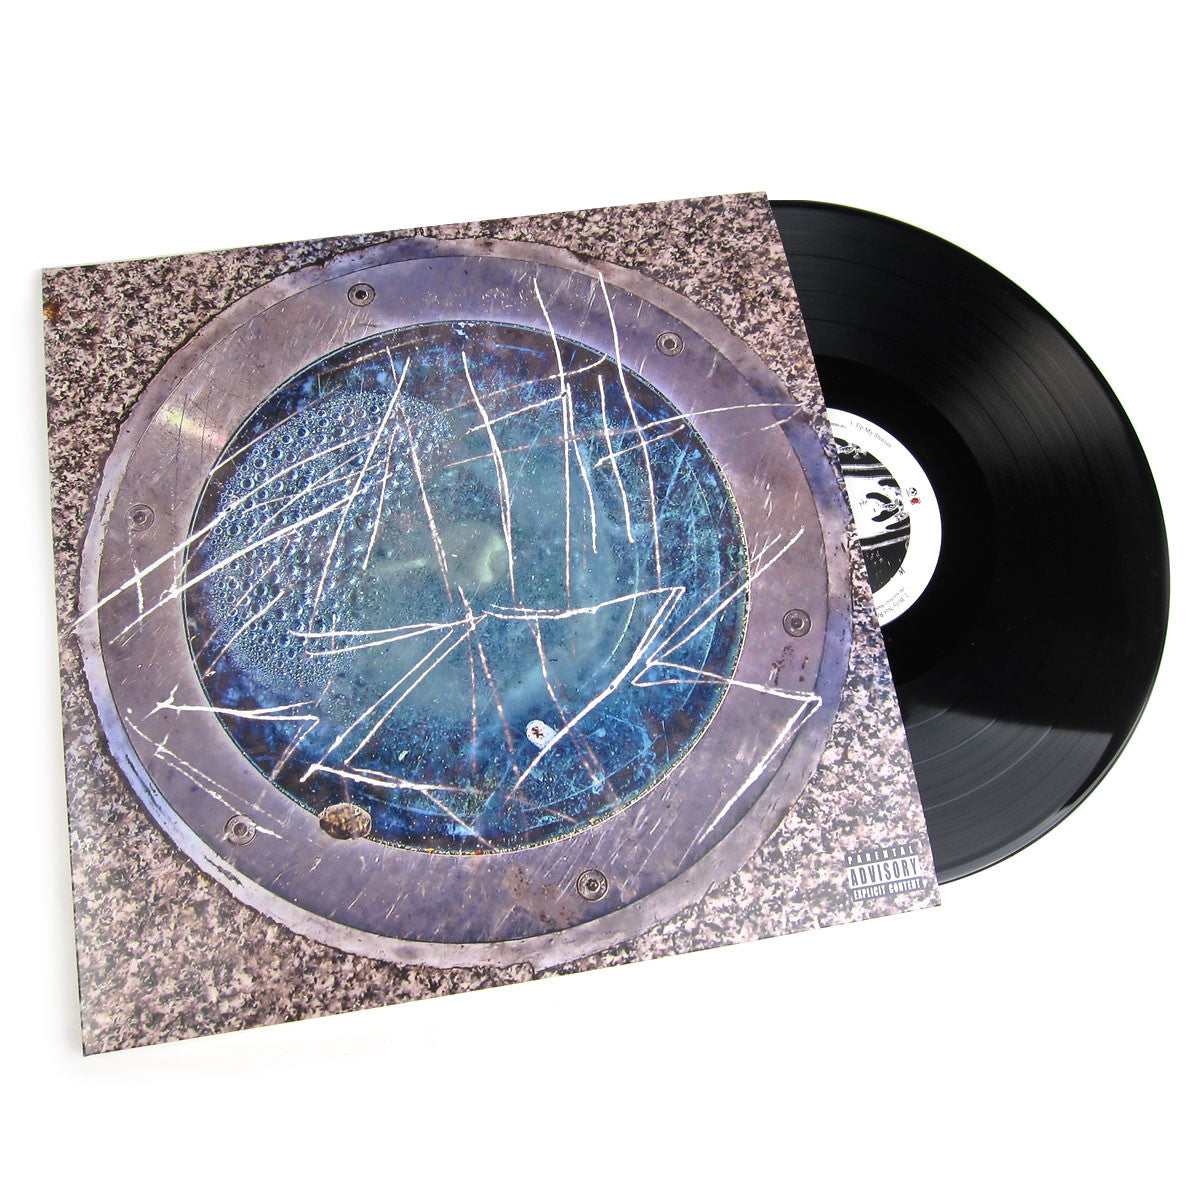 Death Grips: The Powers That B Vinyl 2LP